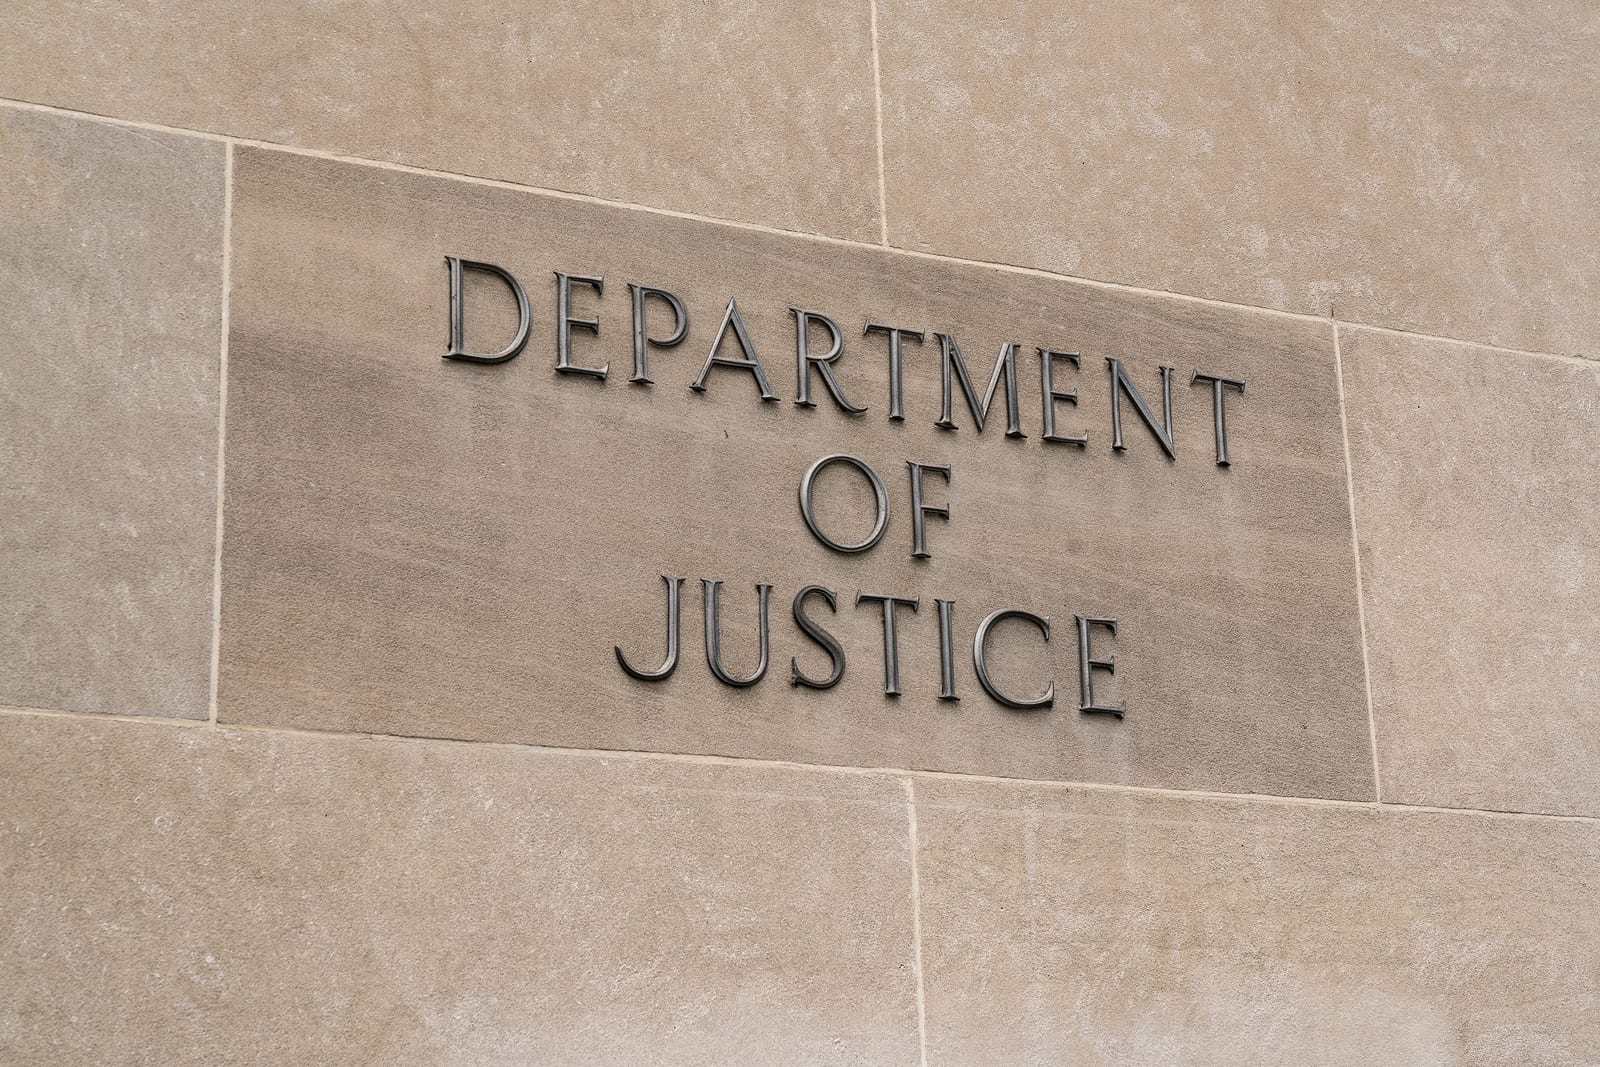 WASHINGTON News: Four Additional Latin Dragon Members Charged With Racketeering Conspiracy